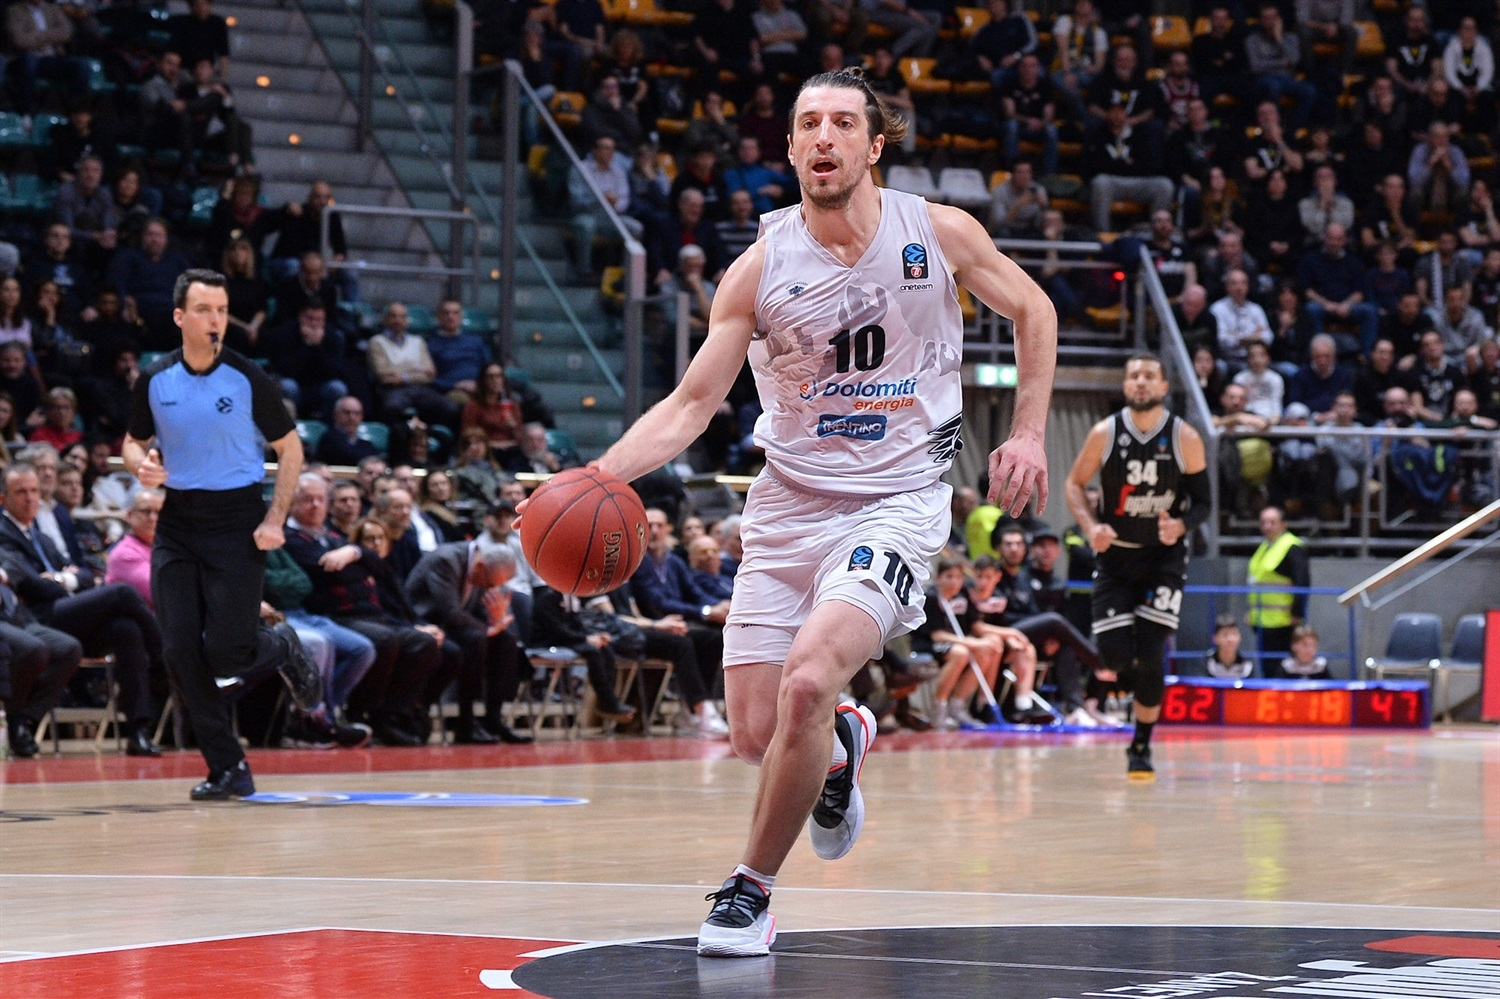 Toto Forray - Dolomiti Energia Trento (photo Virtus) - EC19